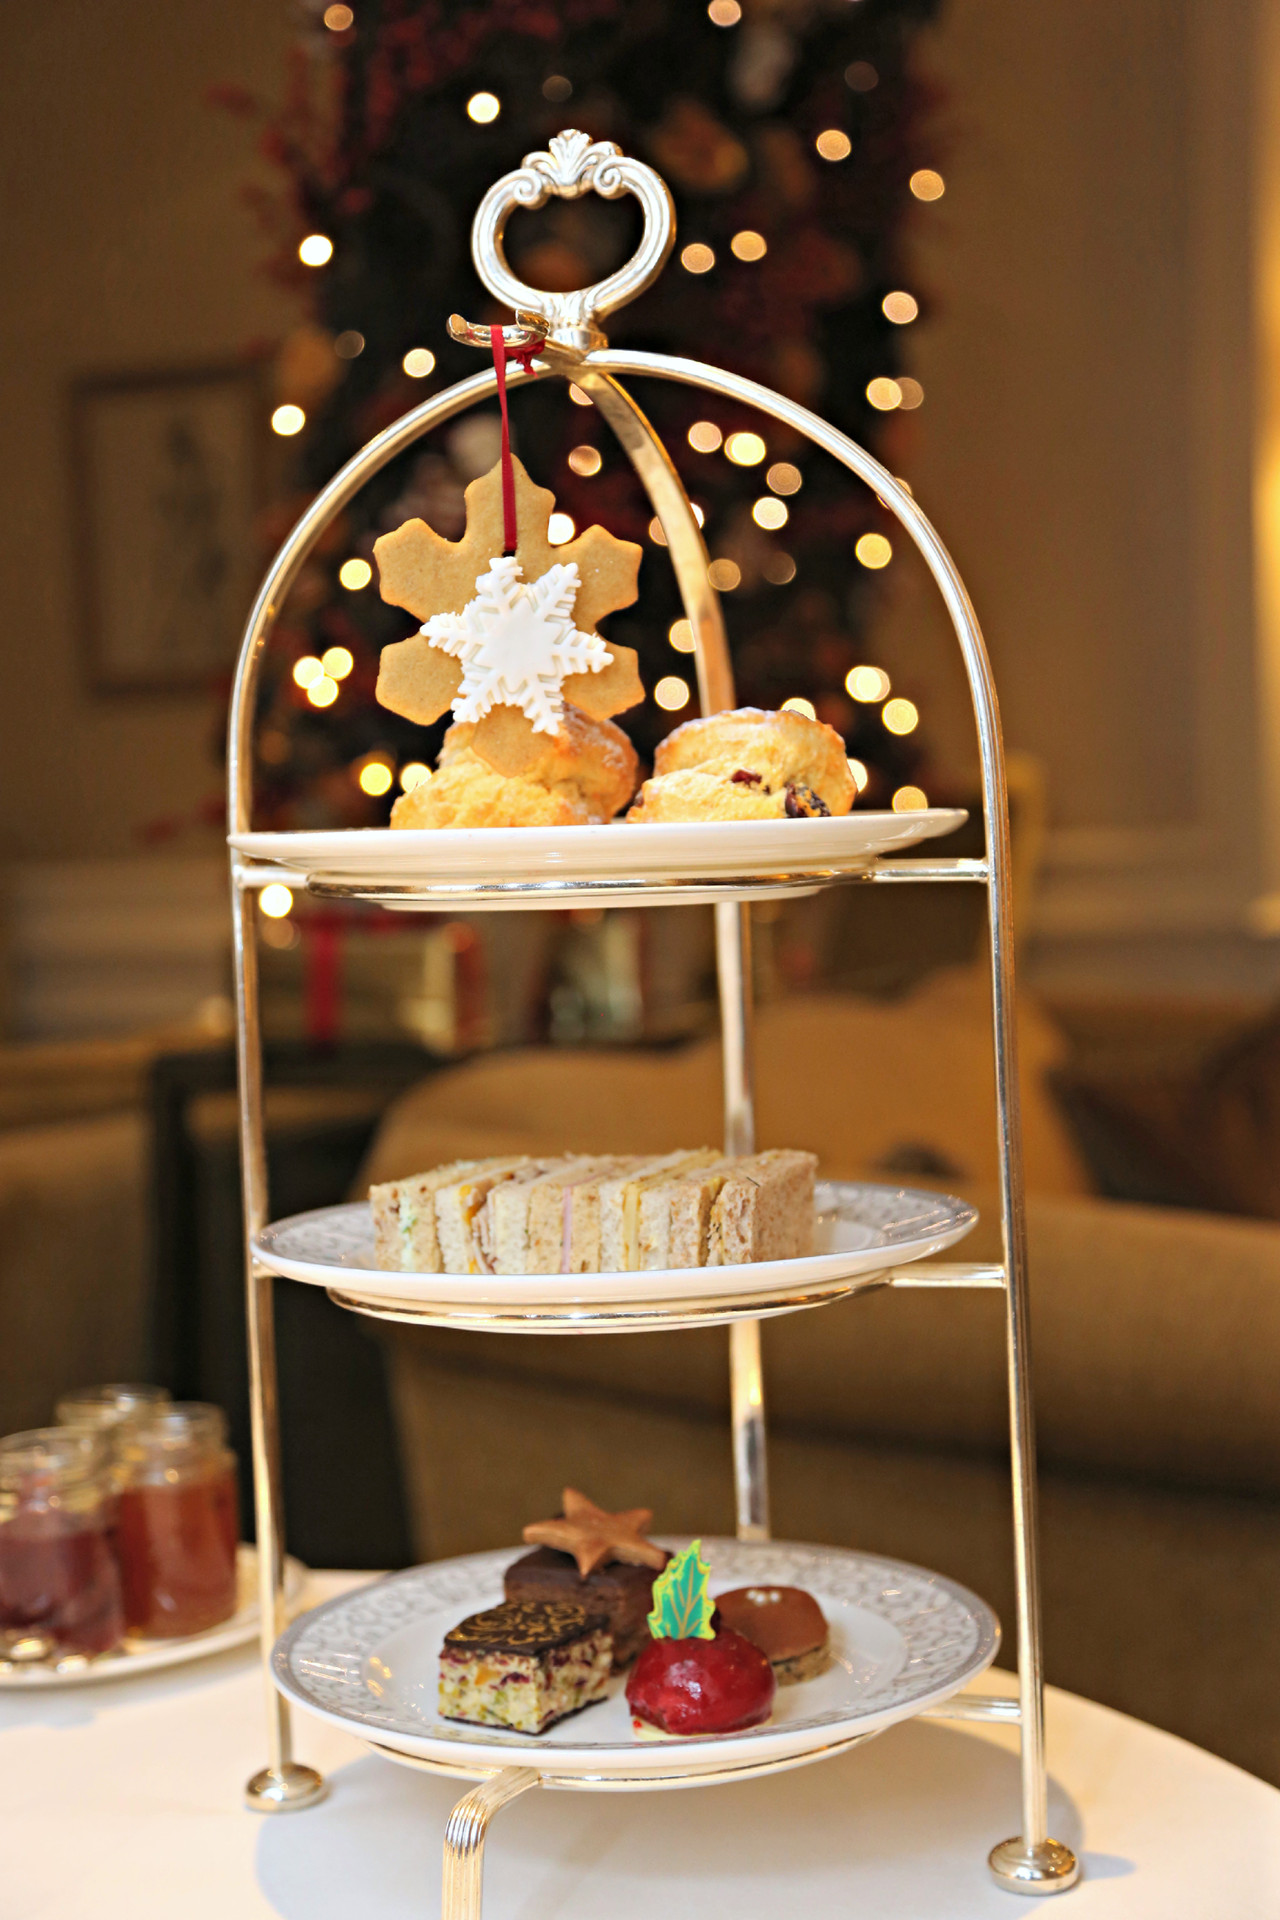 Four Seasons Hampshire Festive Afternoon Tea